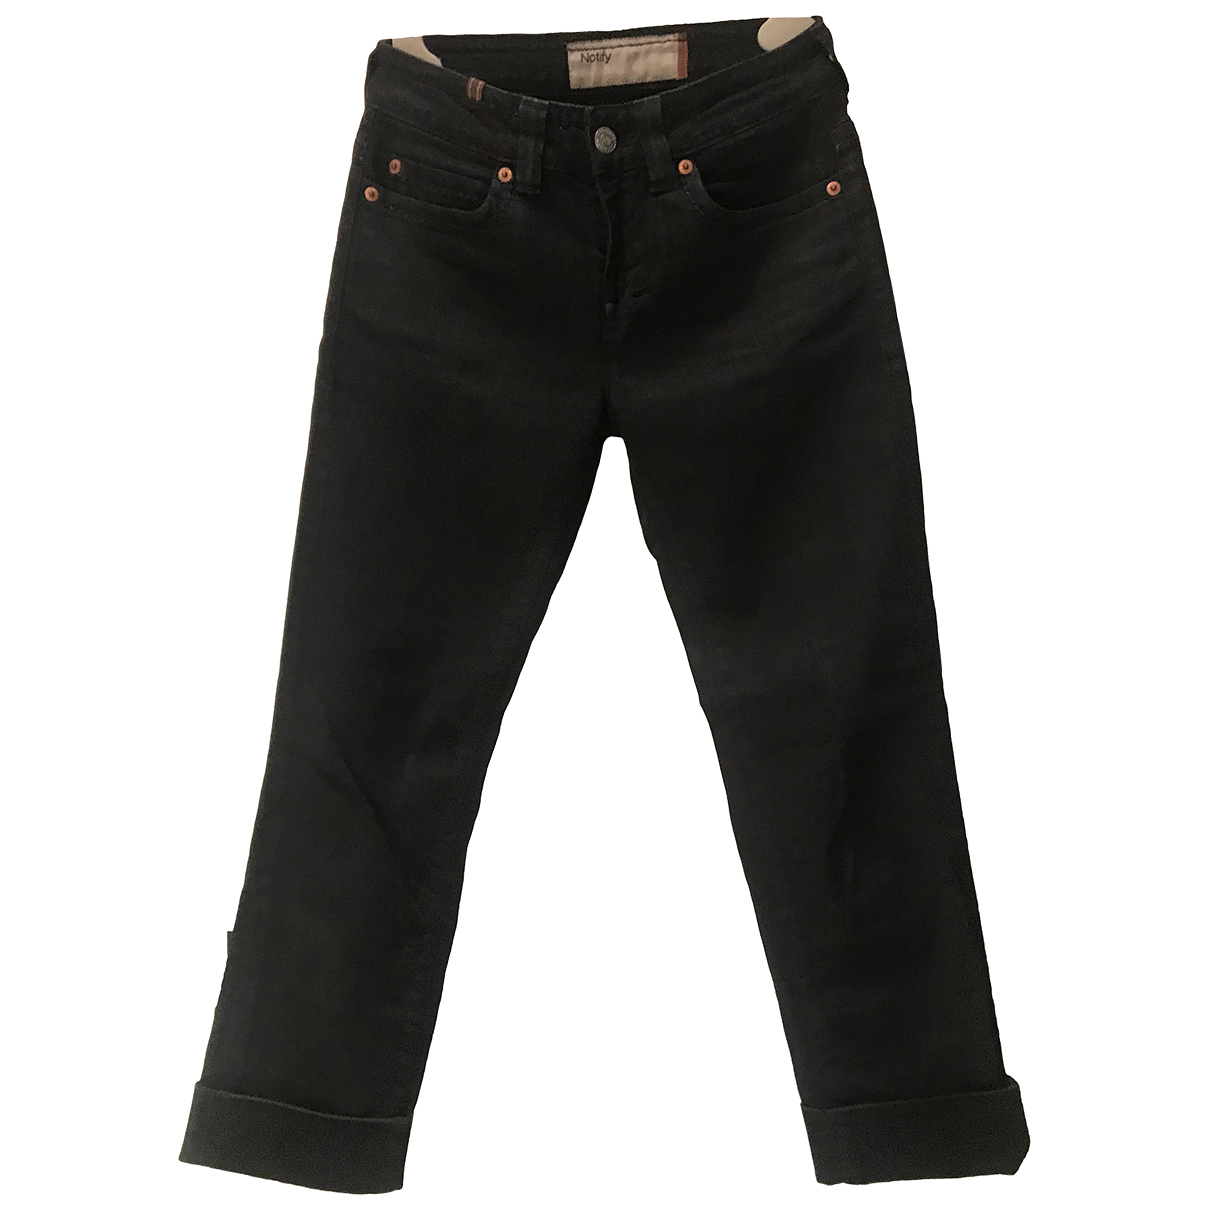 Notify N Black Cotton - elasthane Jeans for Women 25 US